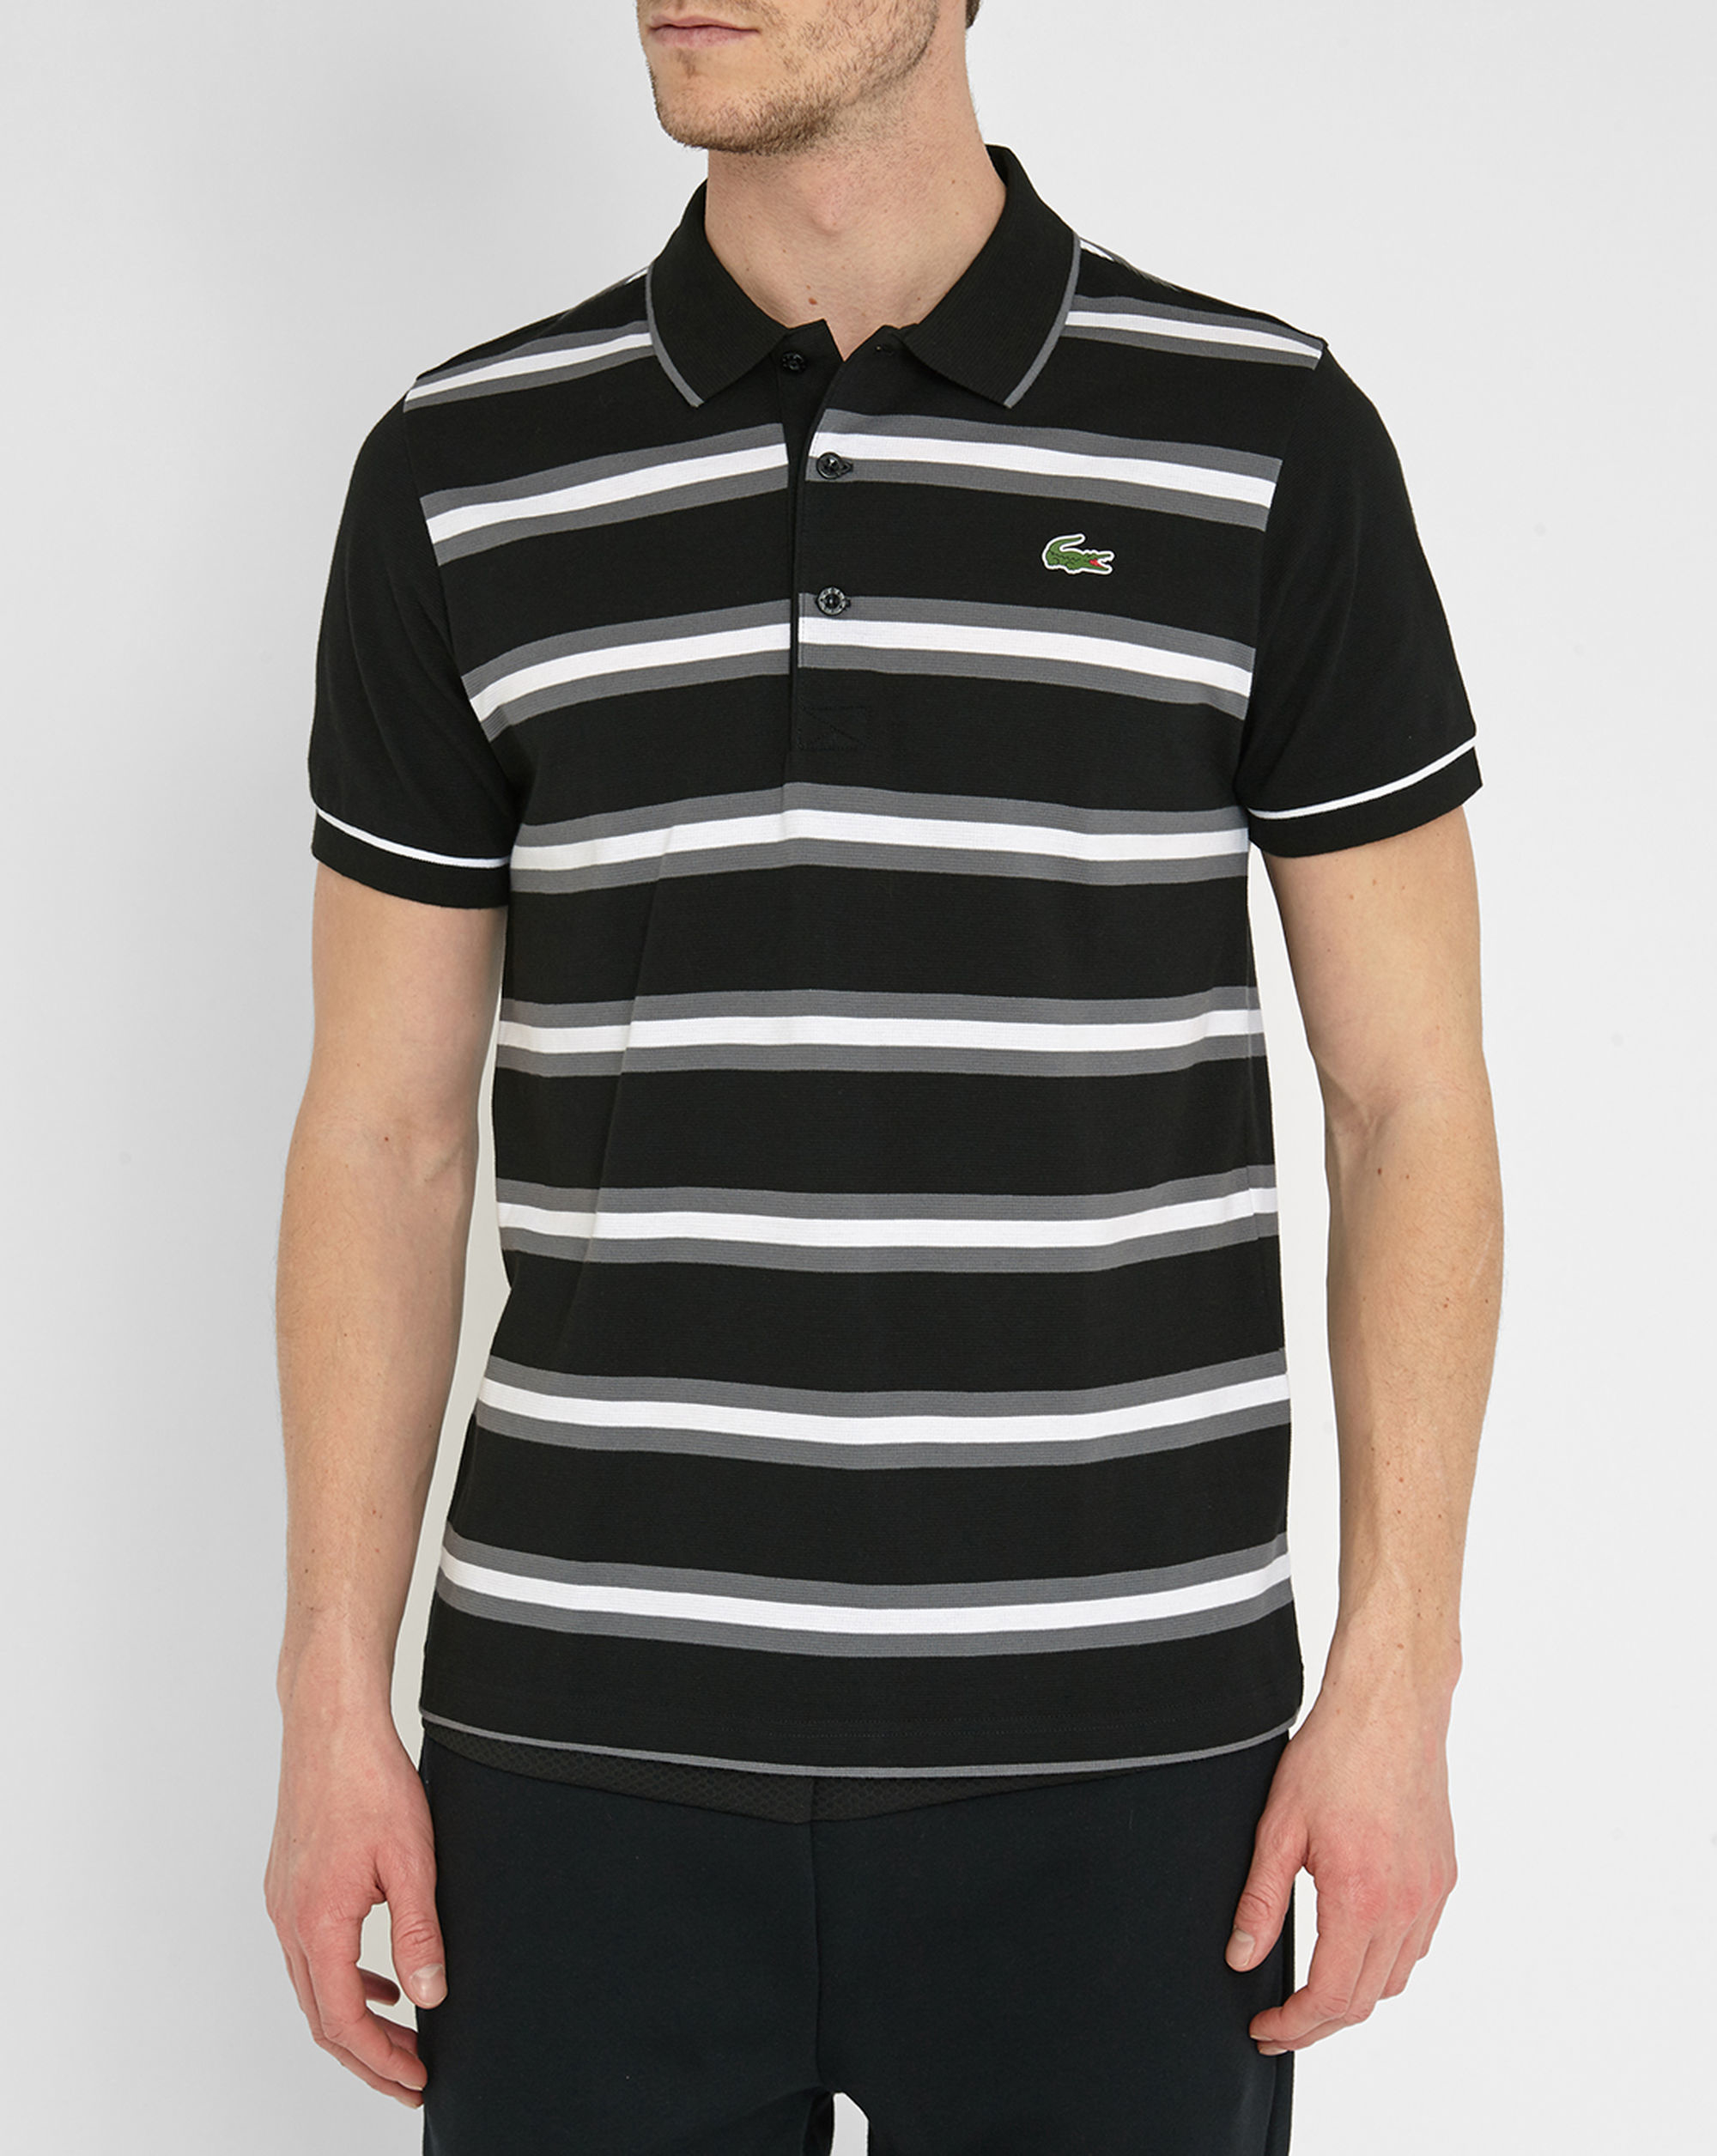 Lacoste black grey white striped sport piqu polo shirt in for Lacoste stripe pique polo shirt